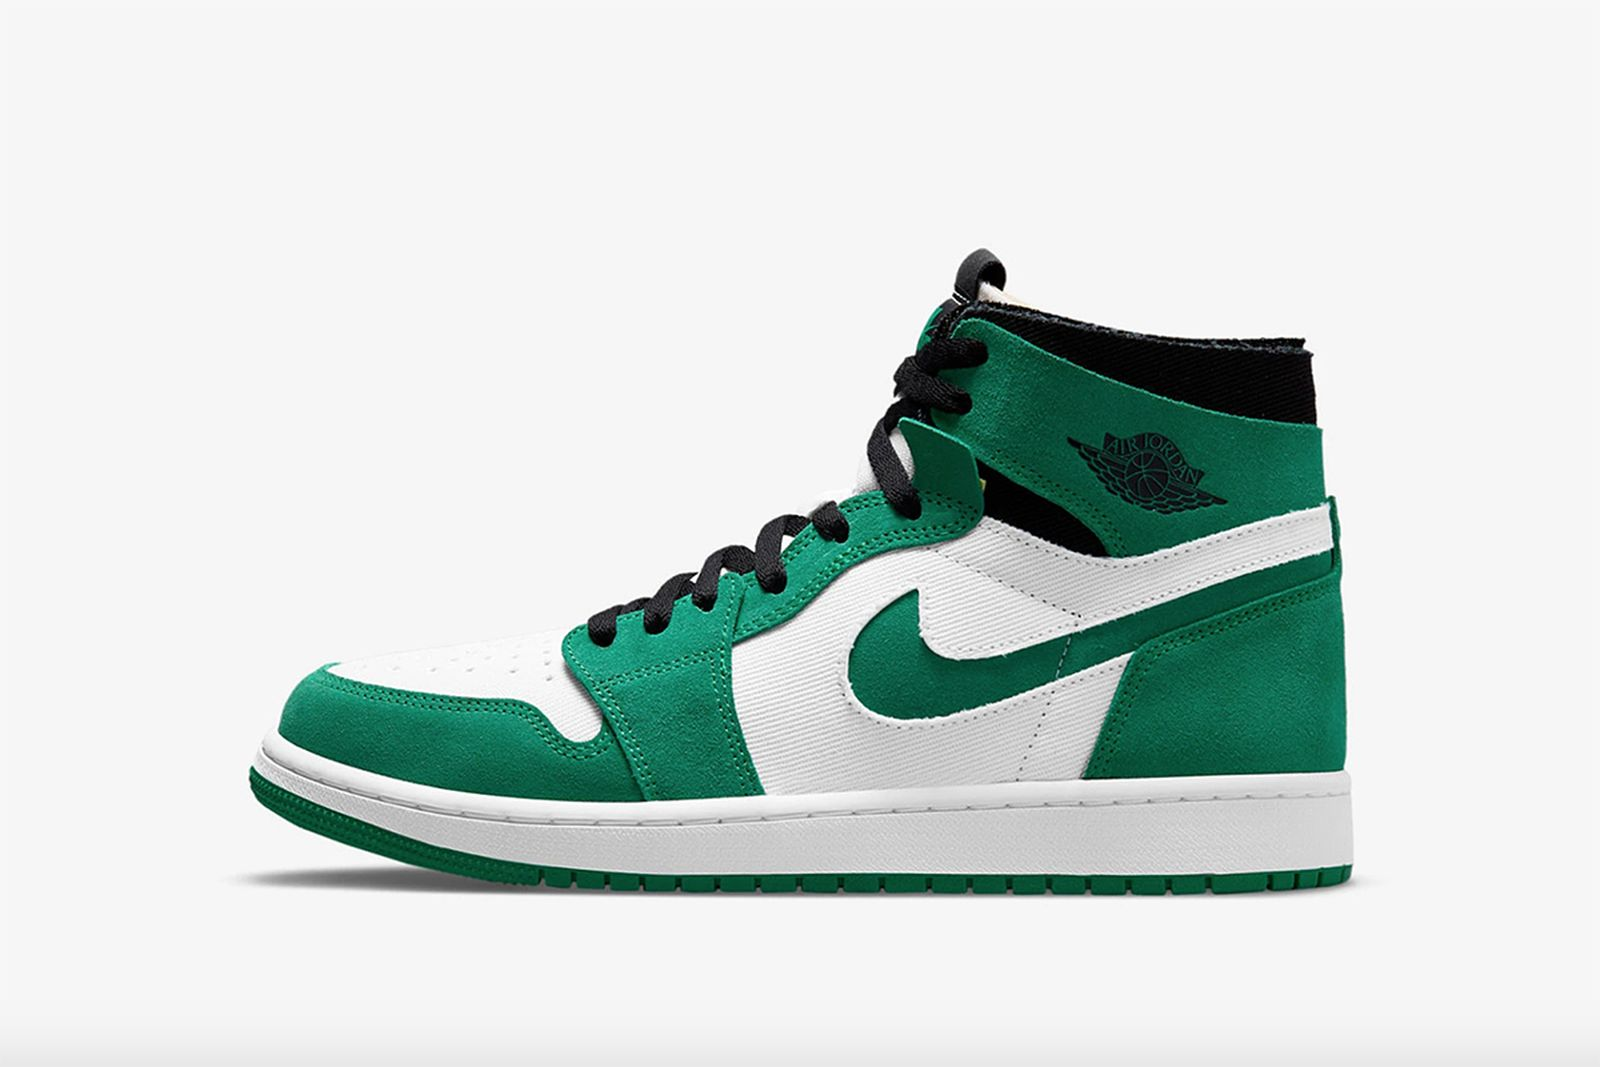 nike-air-jordan-1-zoom-cmft-stadium-green-release-date-price-04